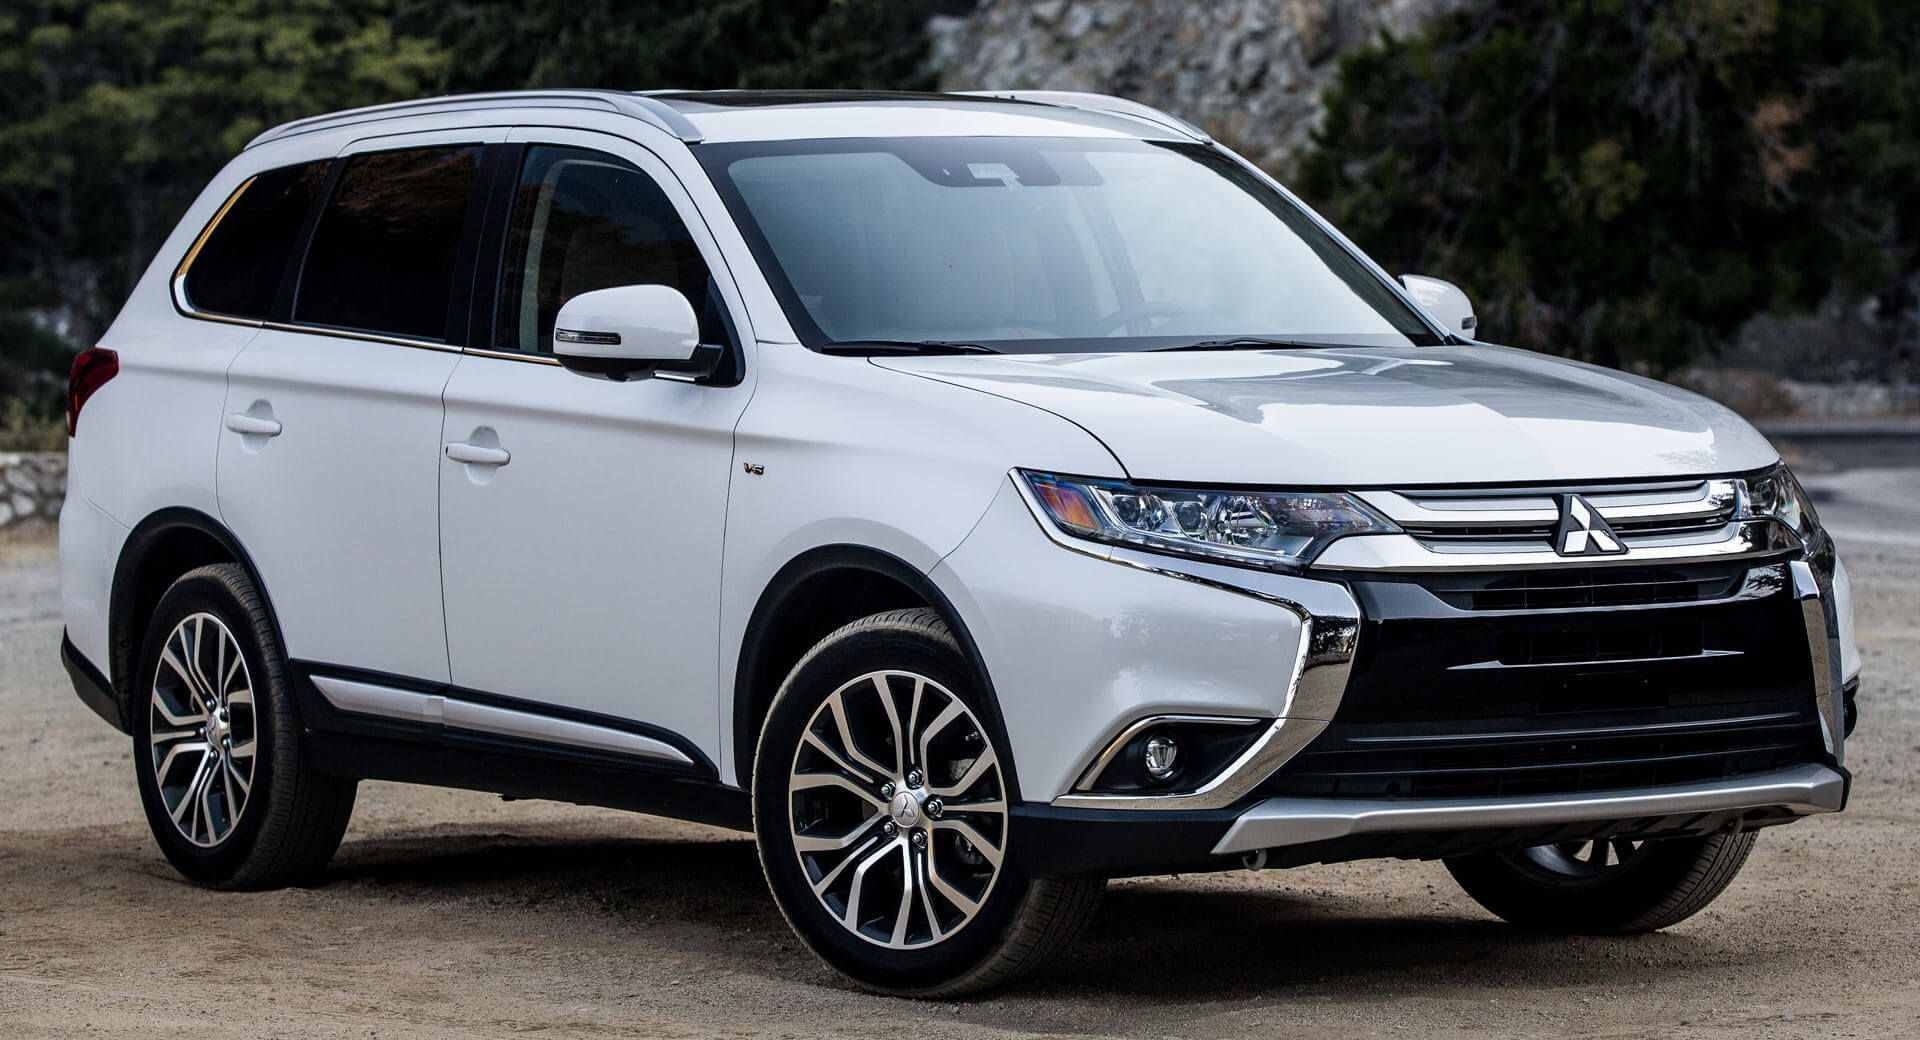 New Mitsubishi Outlander Due In 2021 Could Be Based On The Nissan